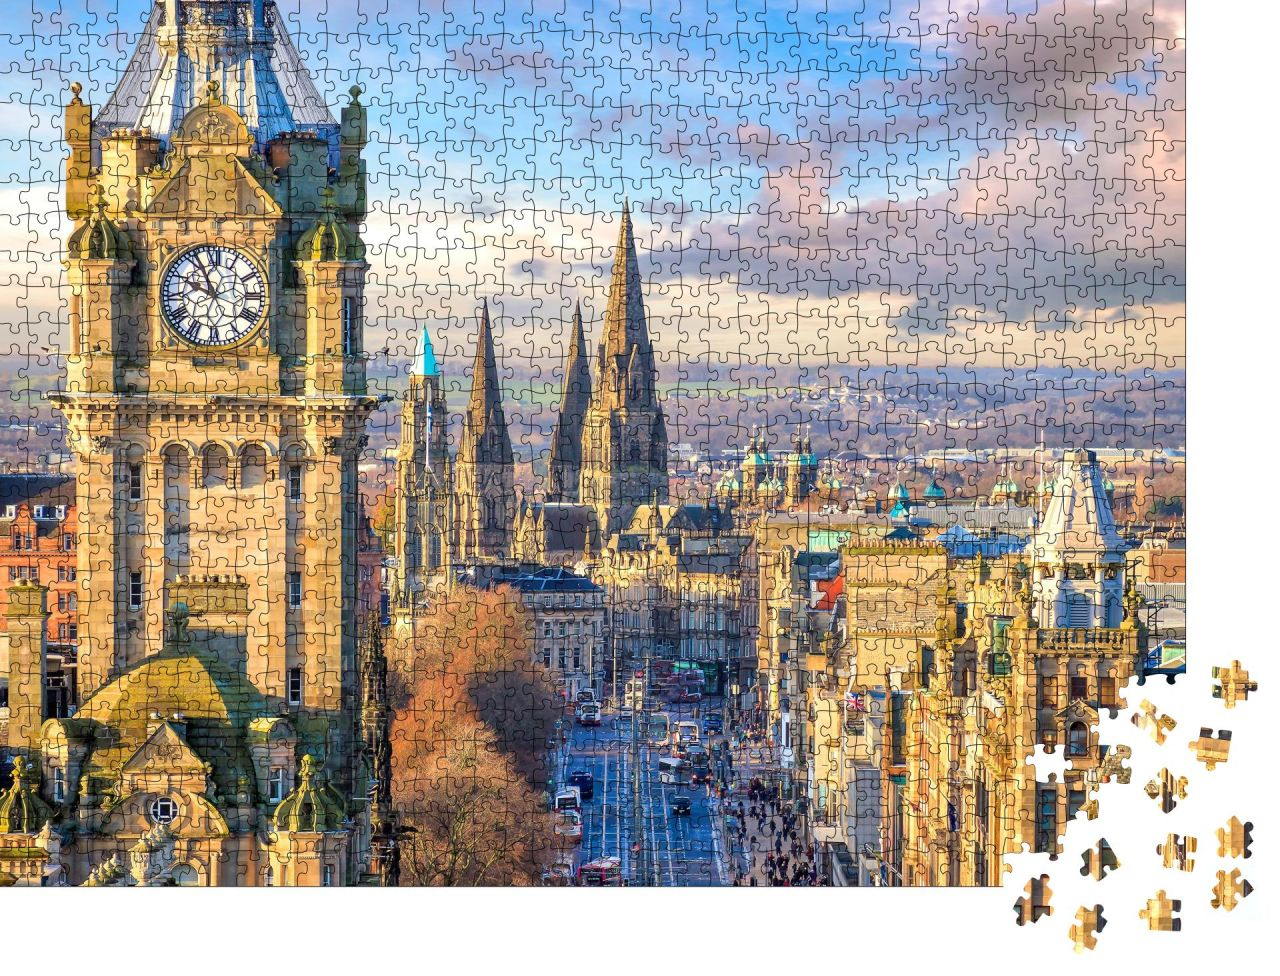 "Puzzle-Motiv ""Old town Edinburgh und Edinburgh Castle in Schottland UK"" von OrangePuzzle"